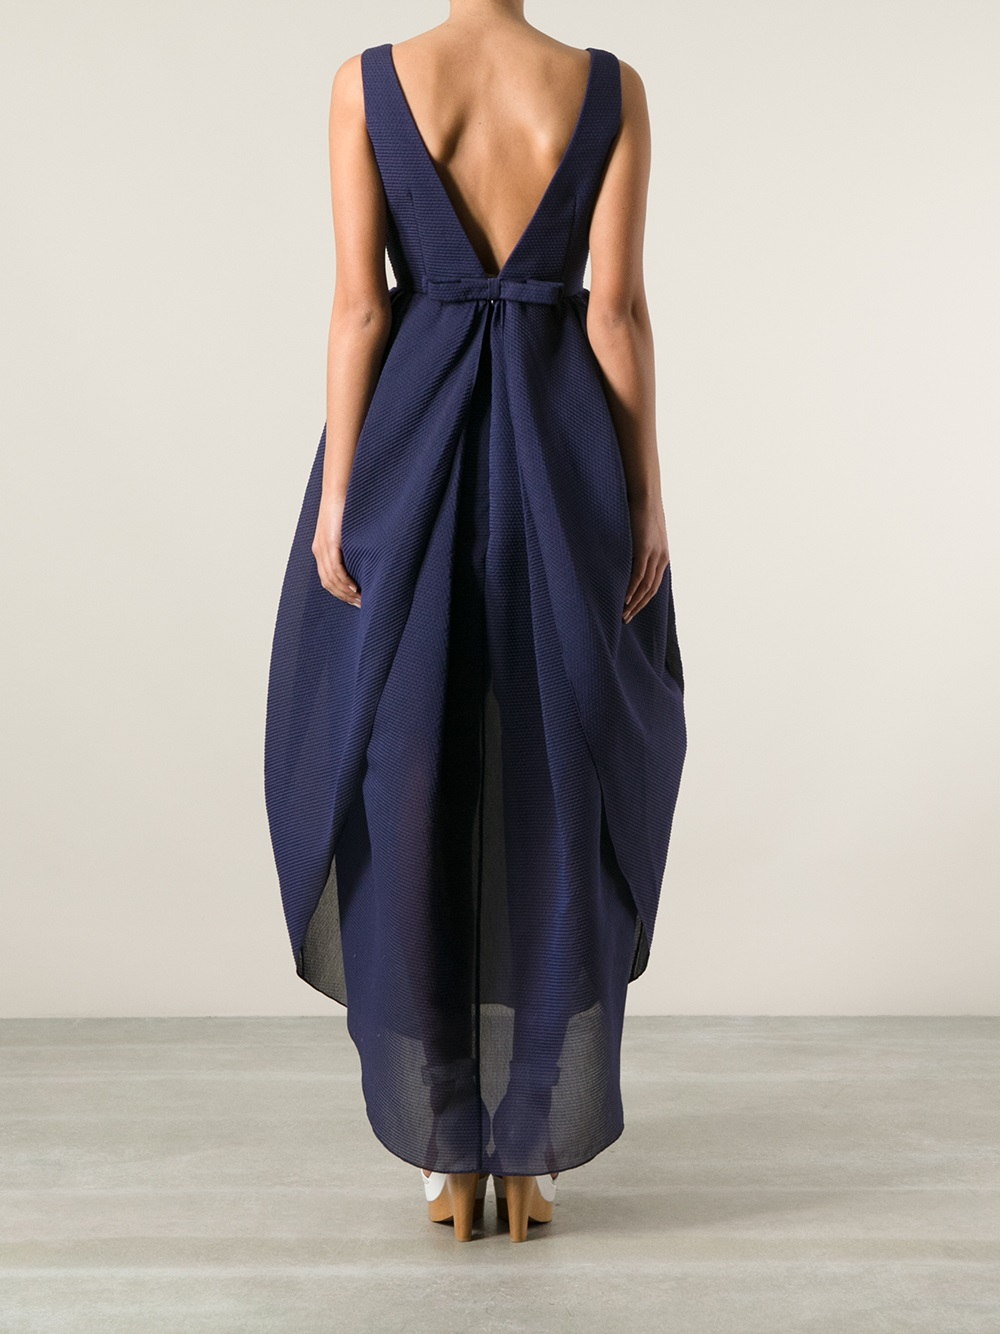 Lyst - Carven Back Bow Dress in Blue